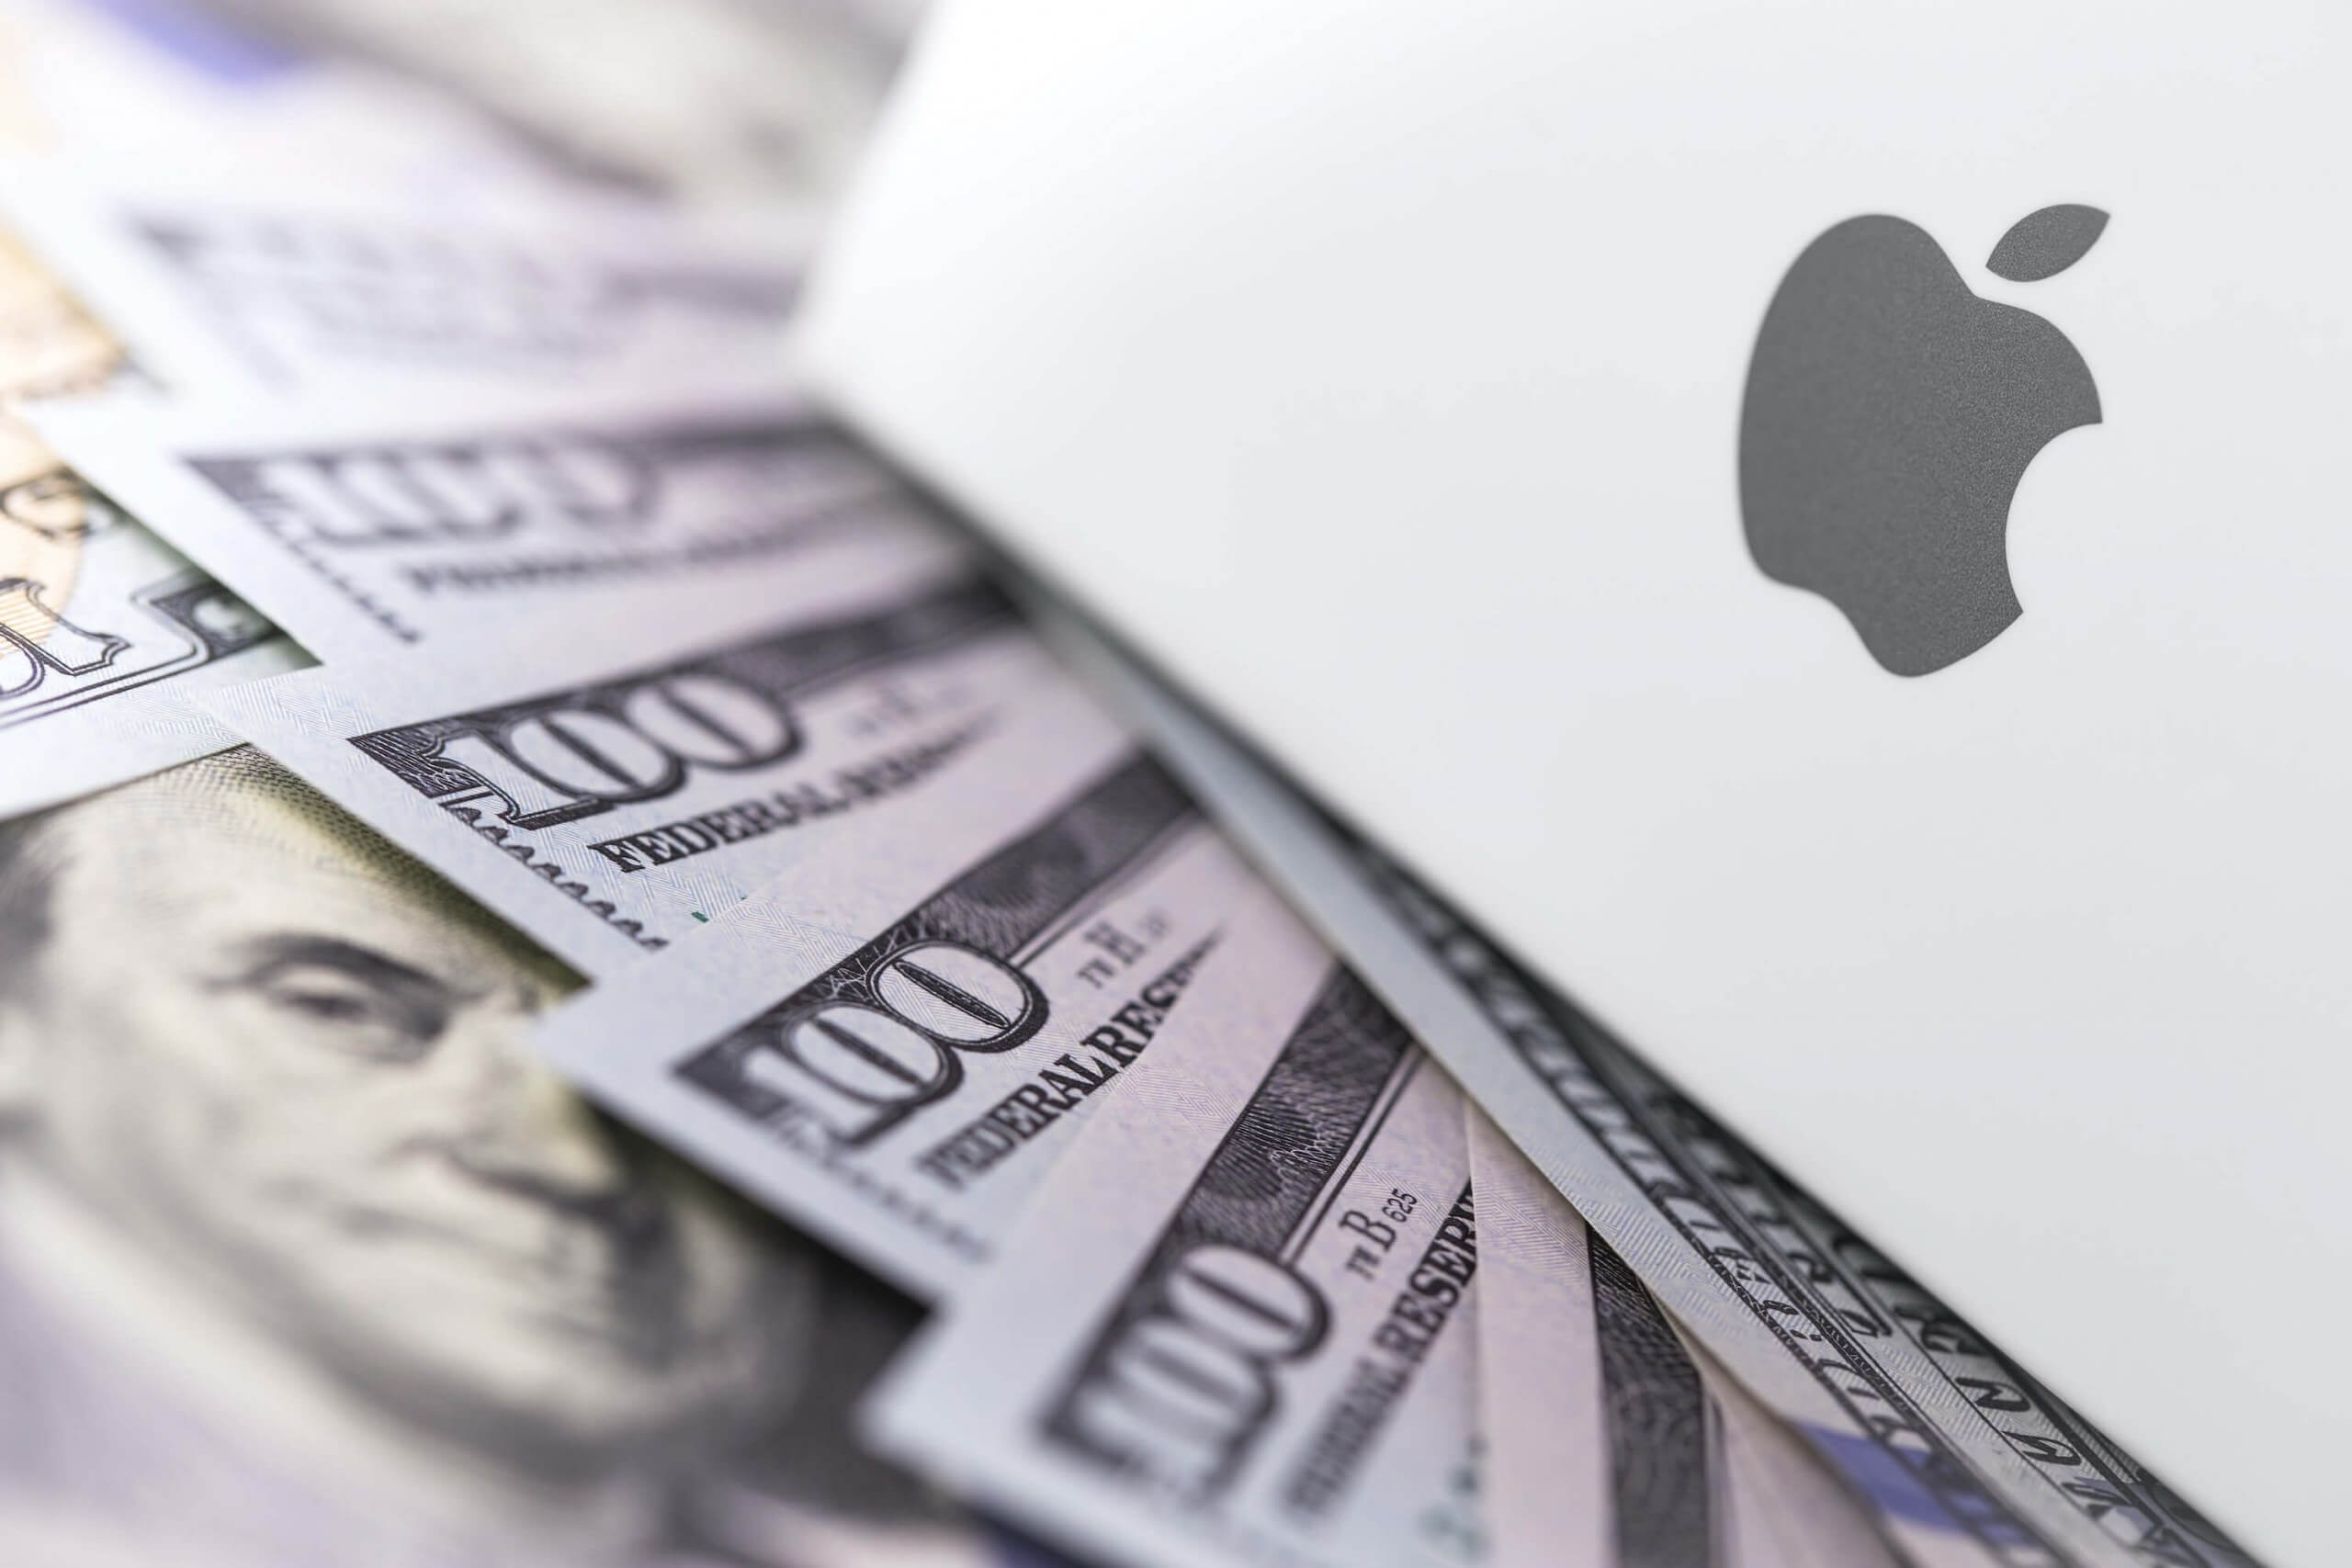 Apple is now world's most valuable company with $2 trillion market capitalization